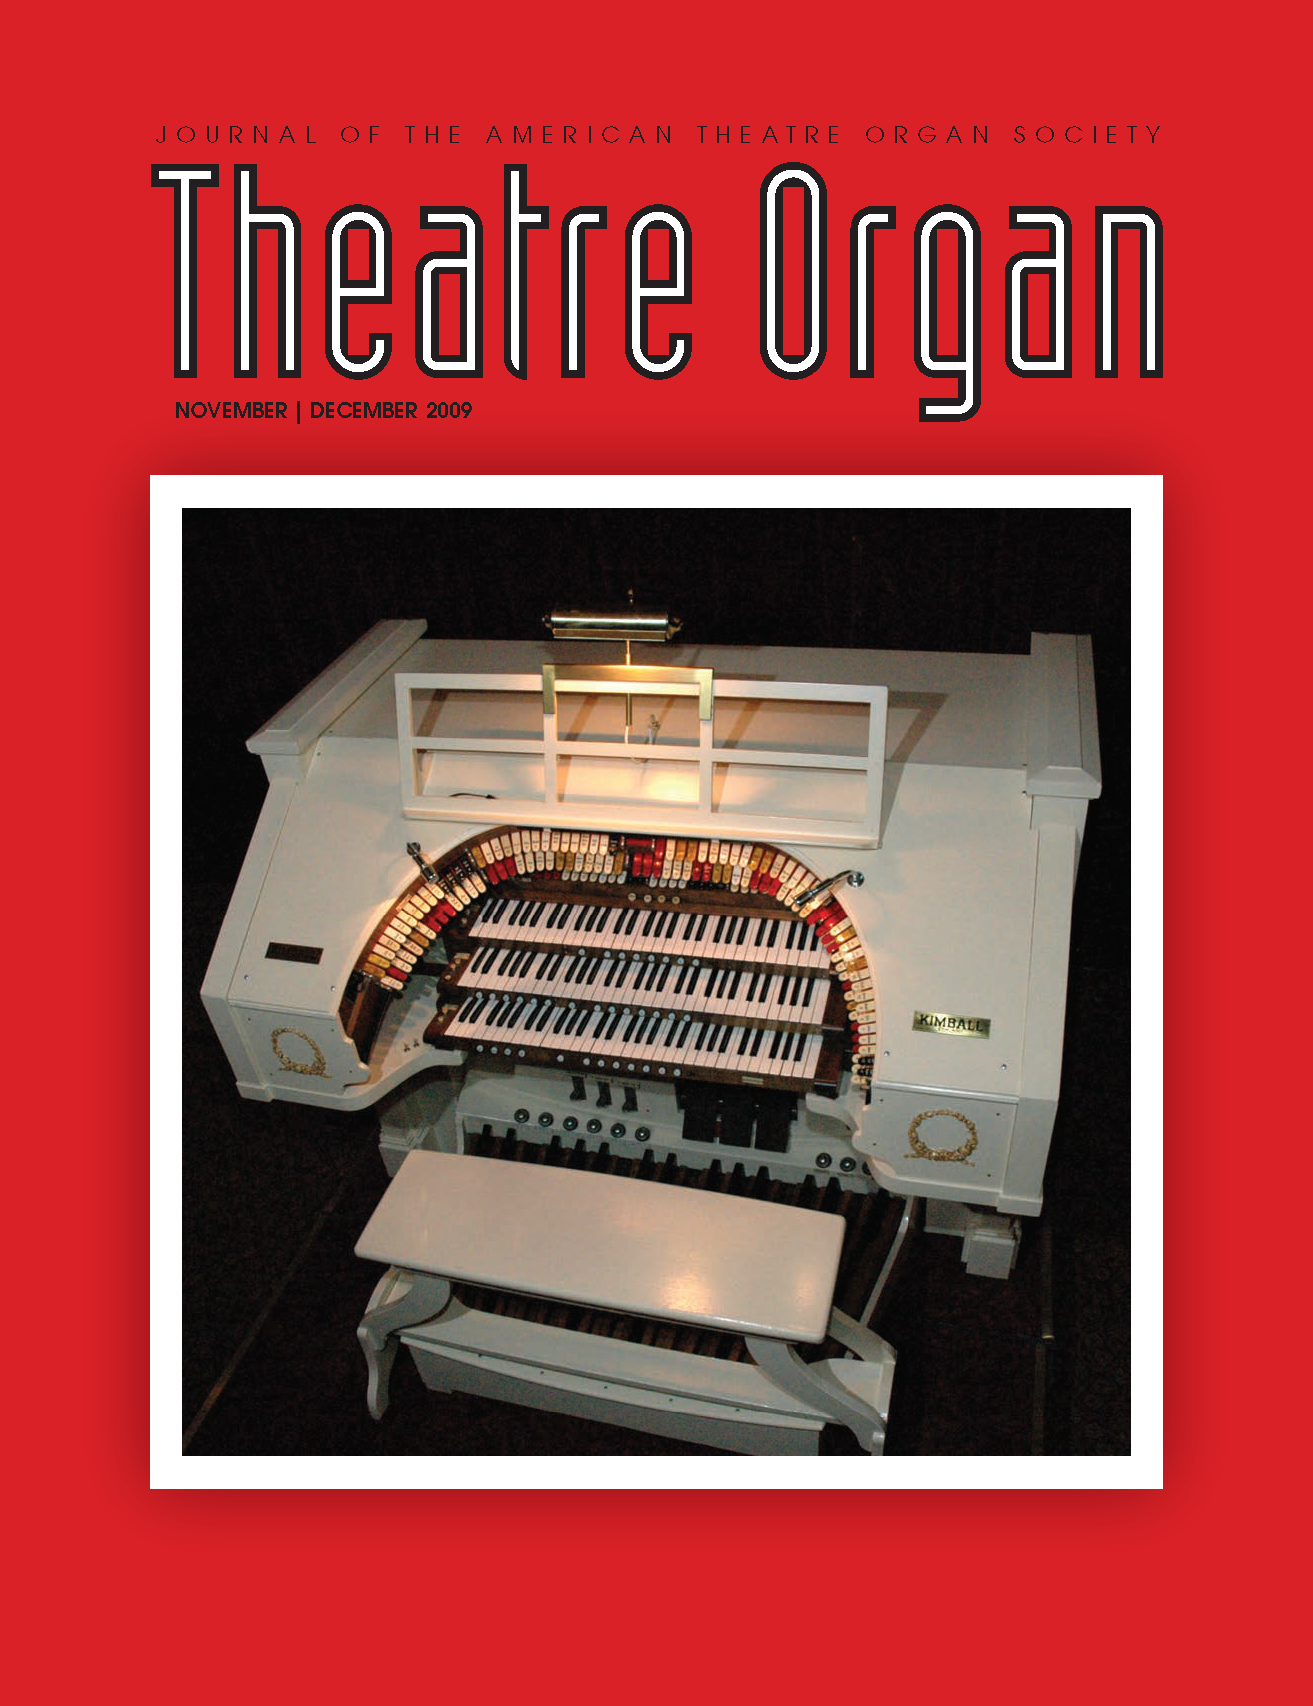 Theatre Organ, November - December 2009, Volume 51, Number 6